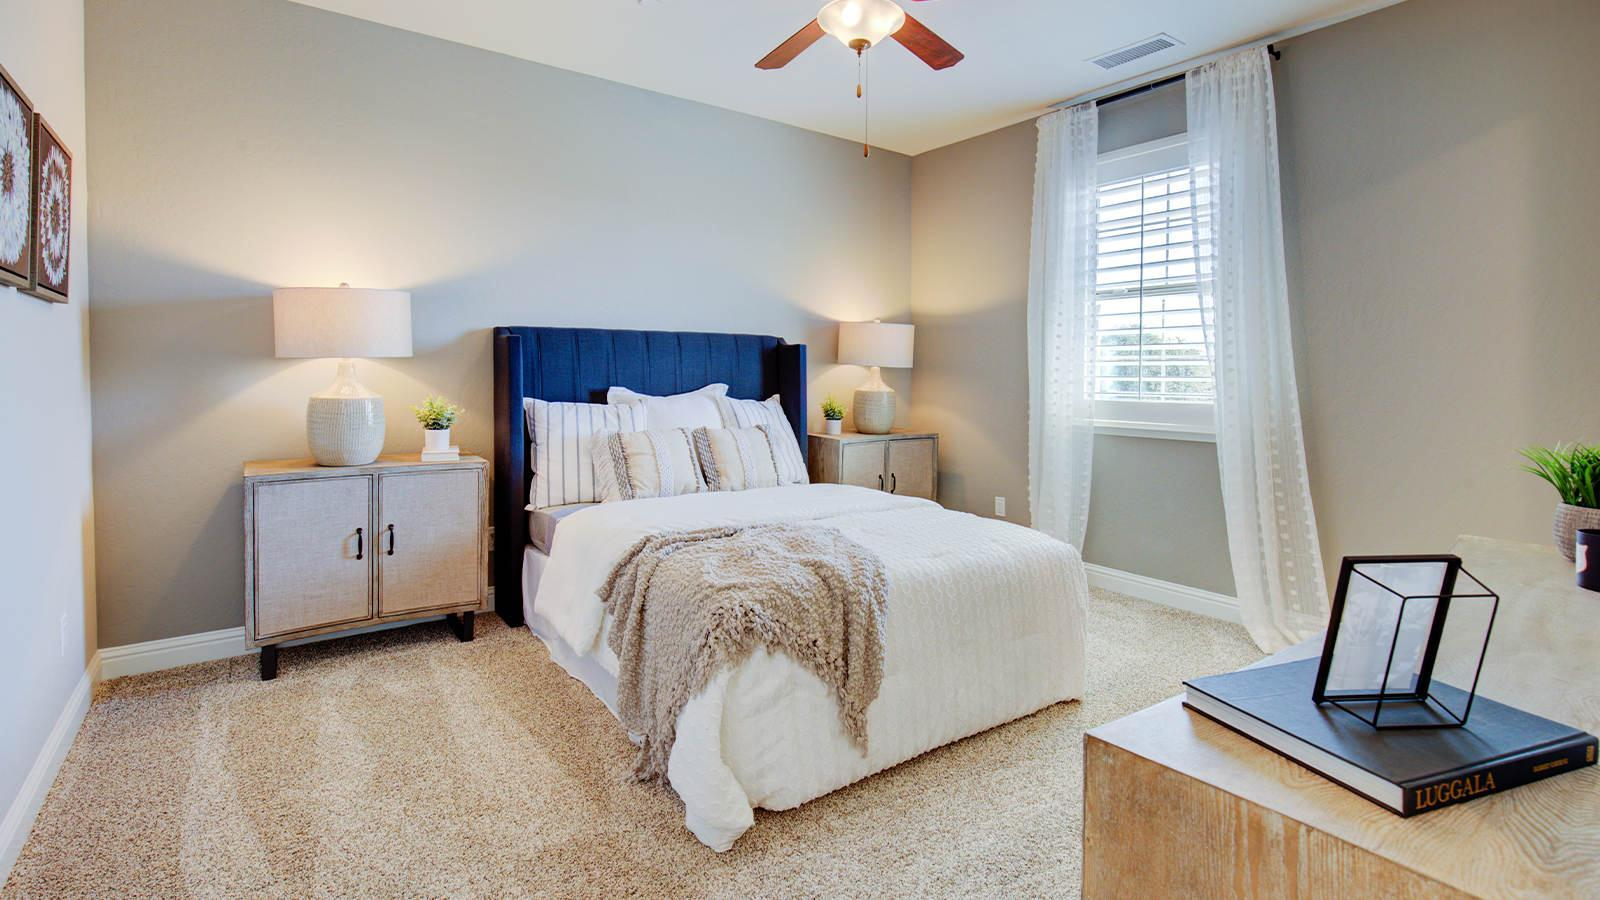 Bedroom featured in the Aria By Granville Homes  in Fresno, CA